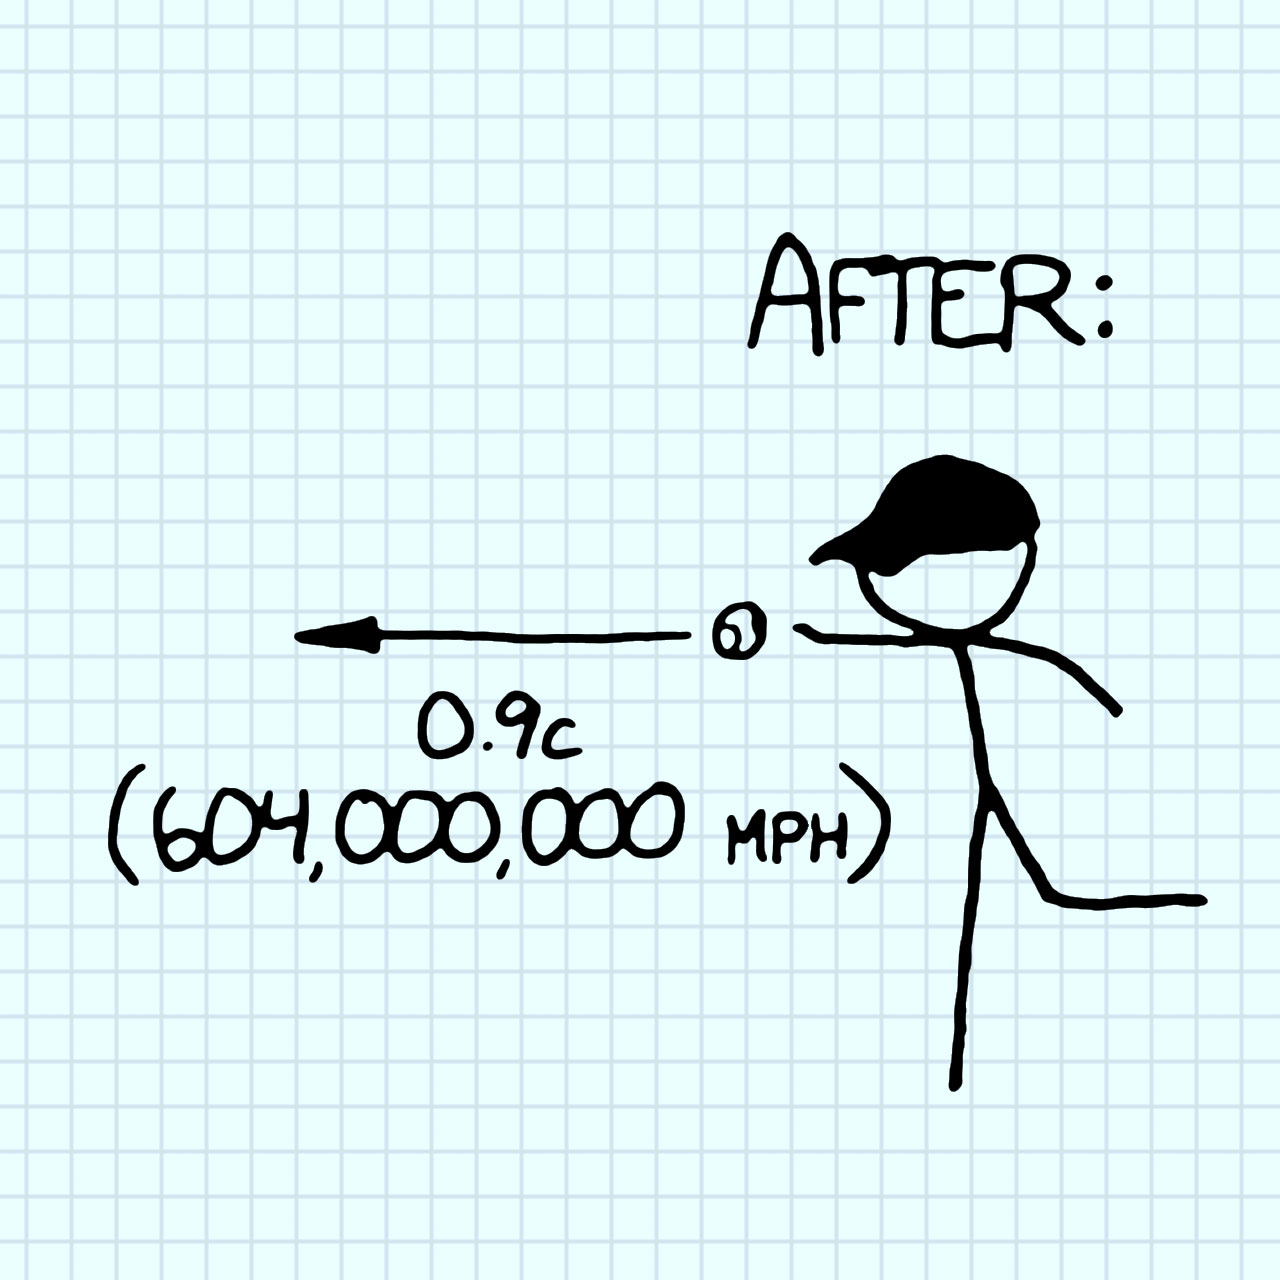 Pitching at 90 percent the speed of light.